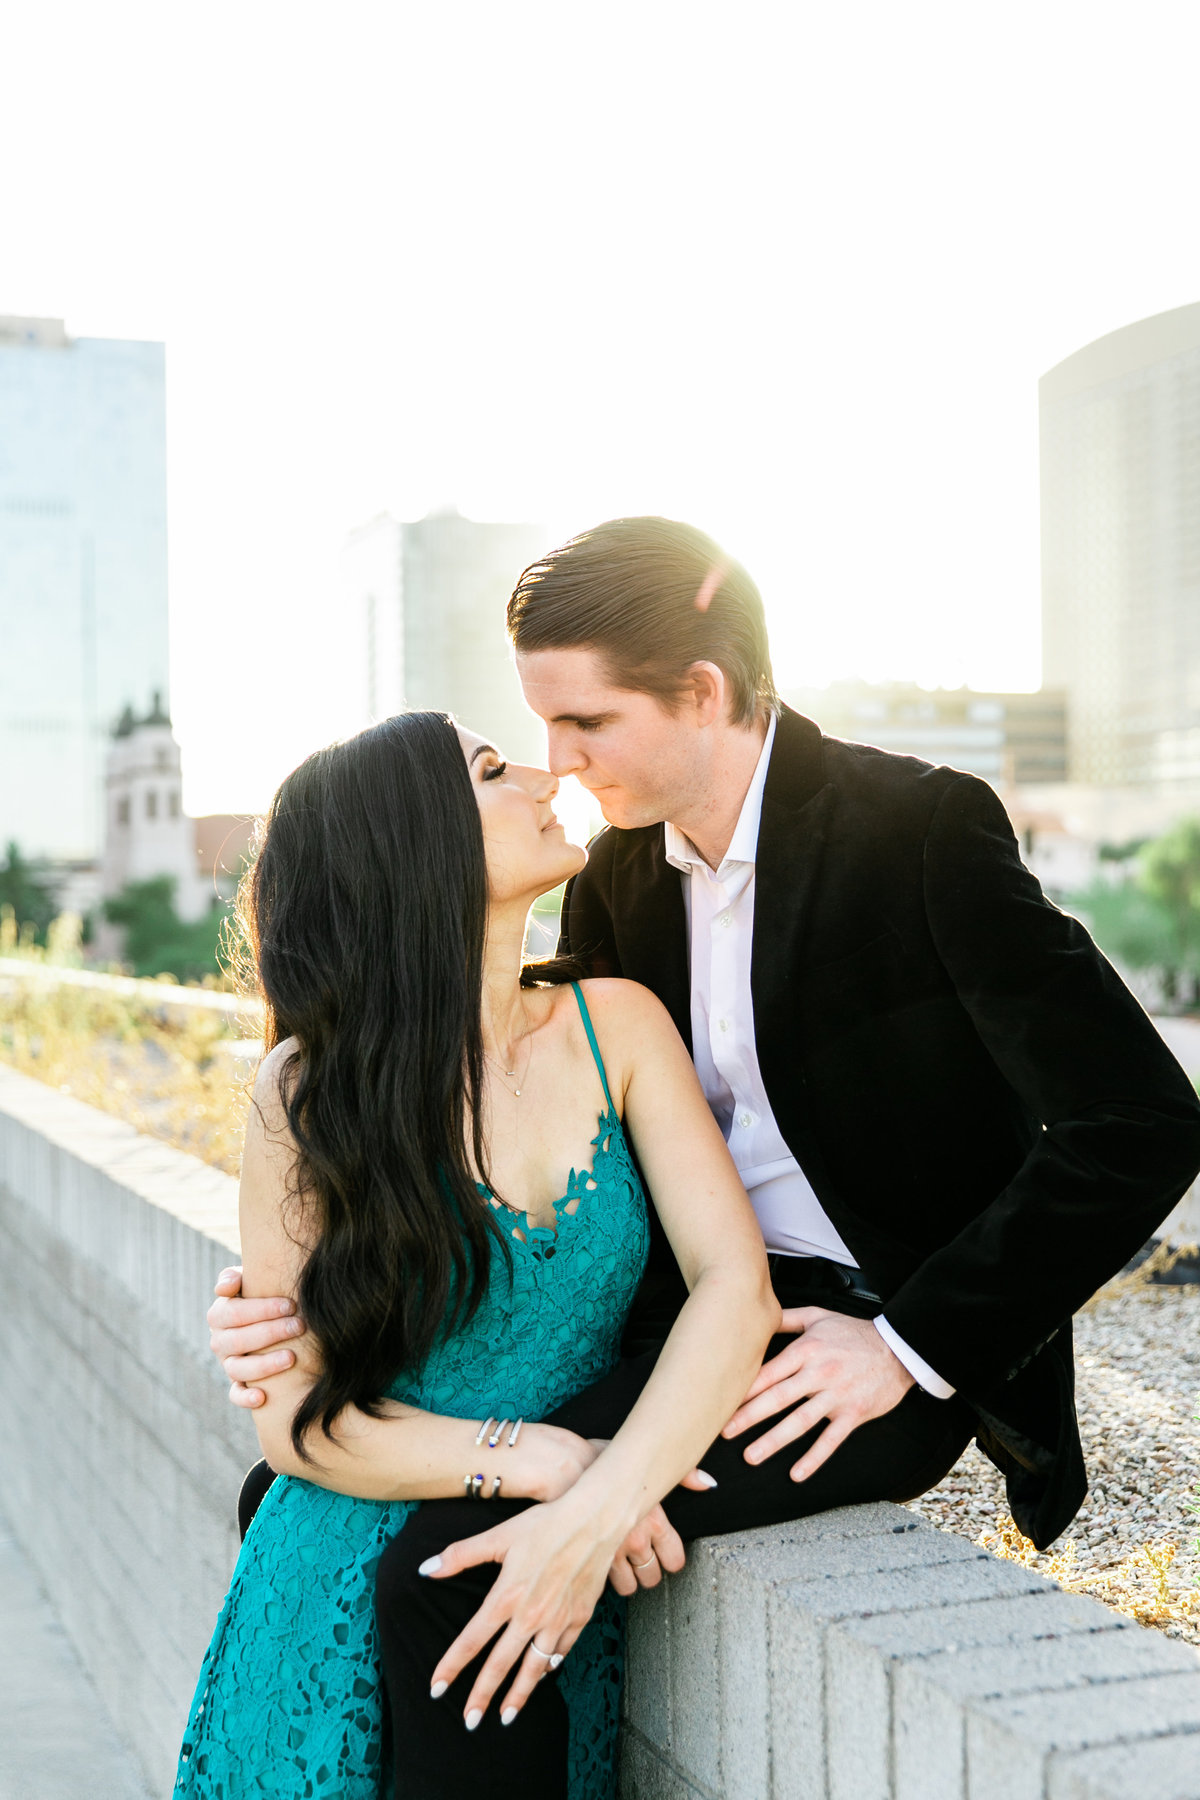 Karlie Colleen Photography - Arizona Engagement City Shoot - Kim & Tim-229